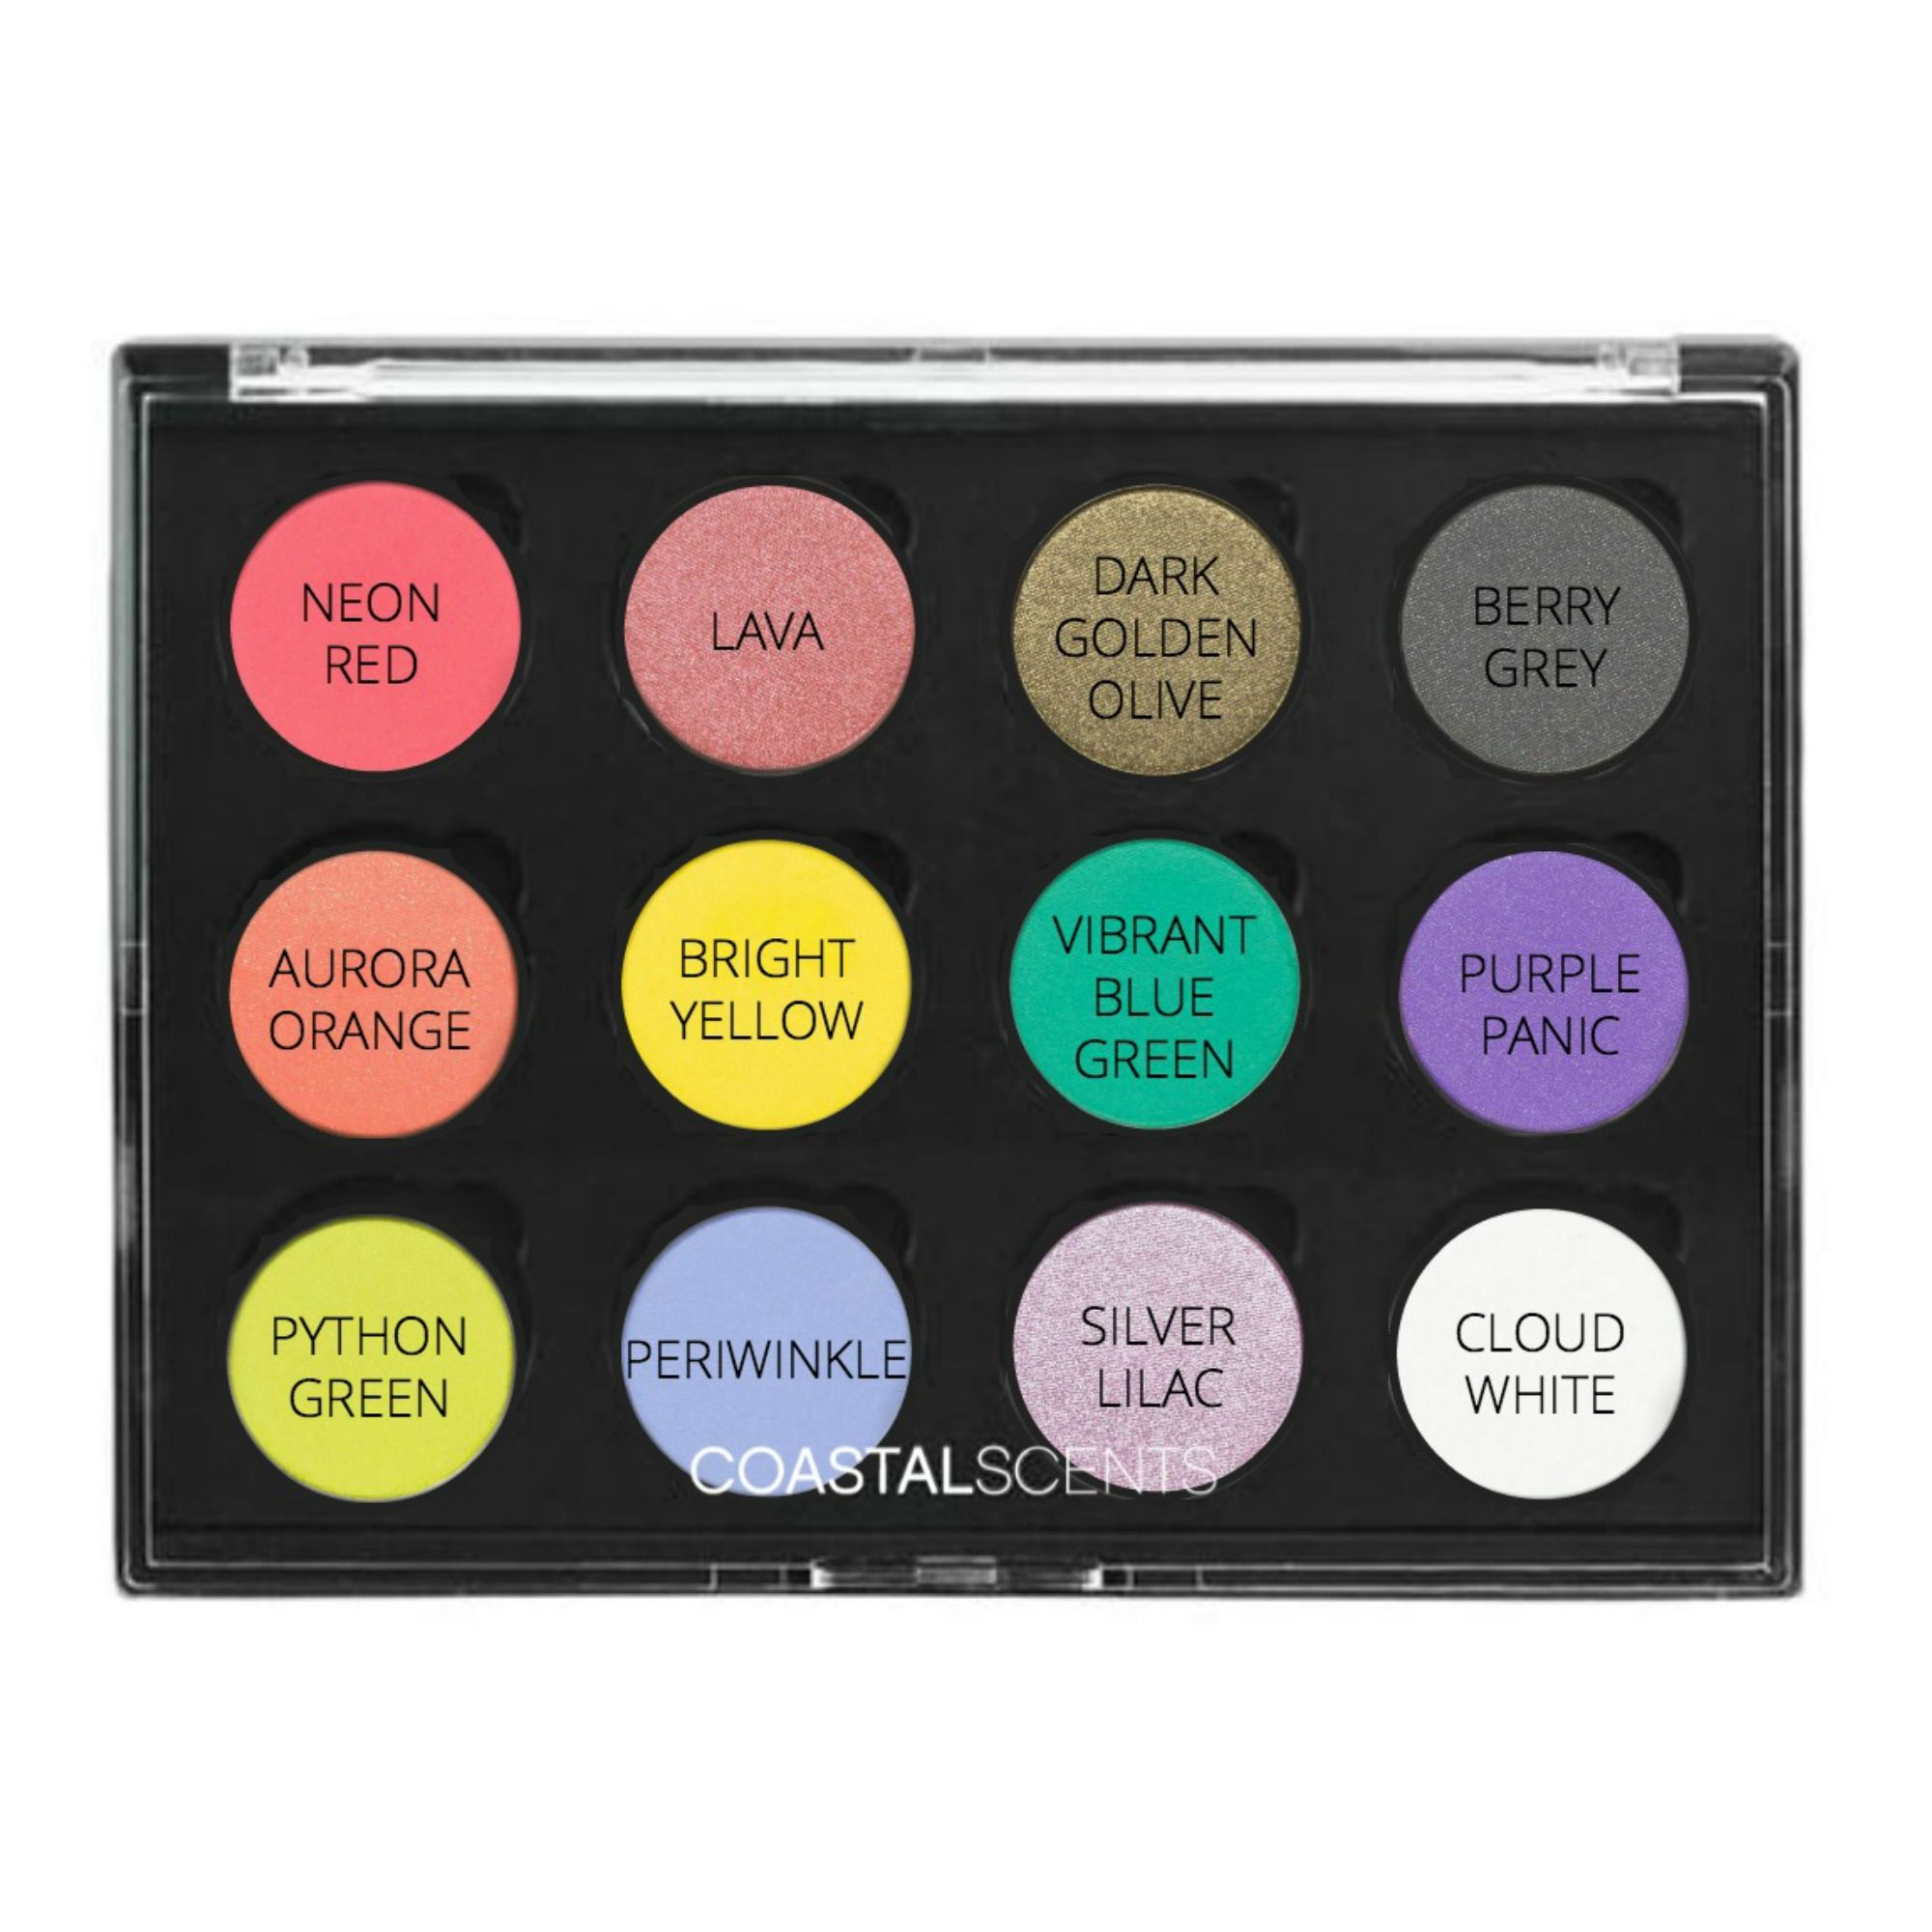 Create your very own Coastal Scents Custom Palette! Choose